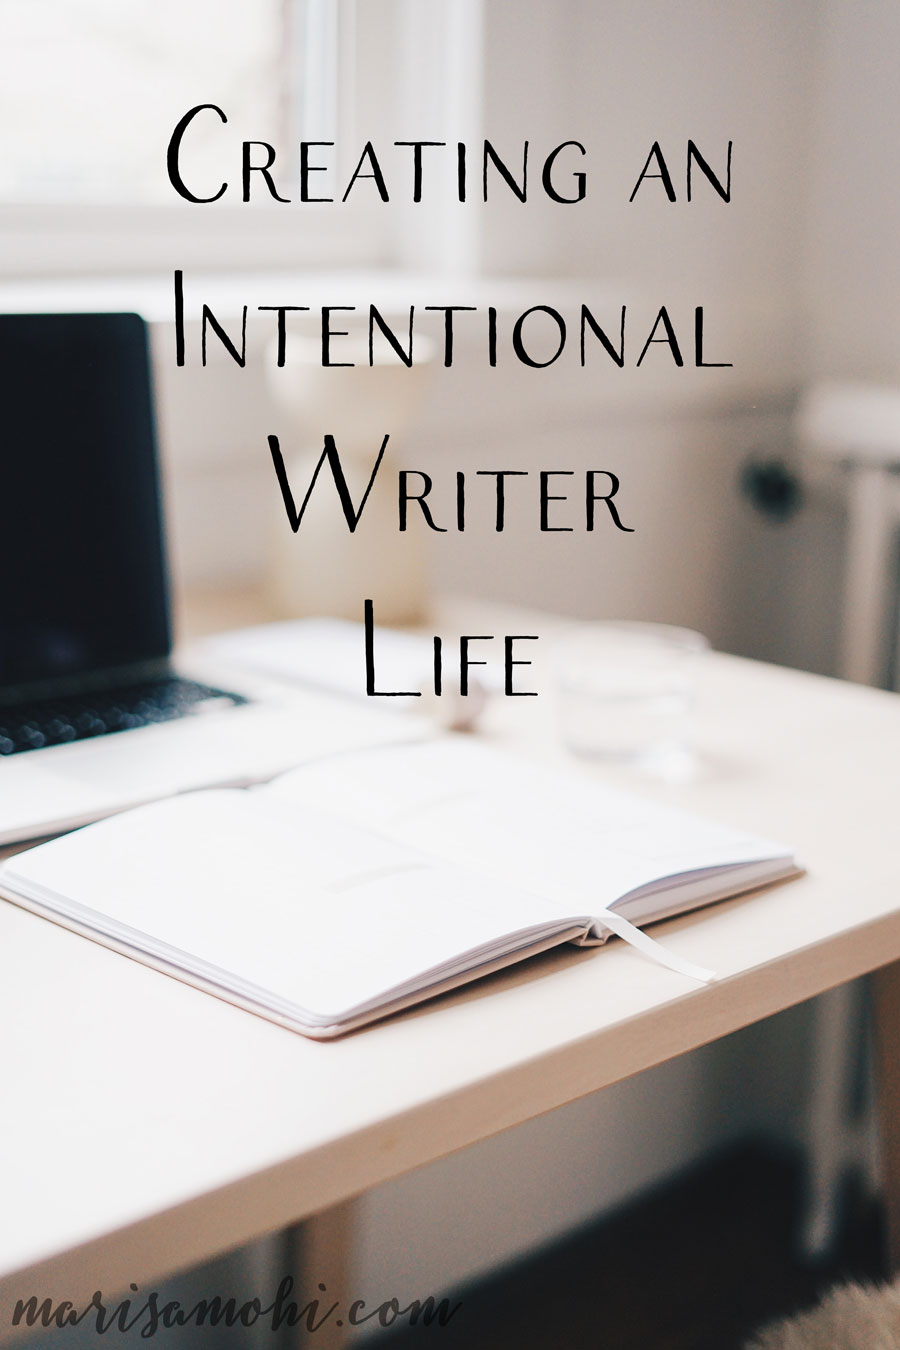 Creating an Intentional Writer Life| Struggling to achieve your goals and build the habits that will get you where you want to be? Here's how you can work on creating an intentional writer life.